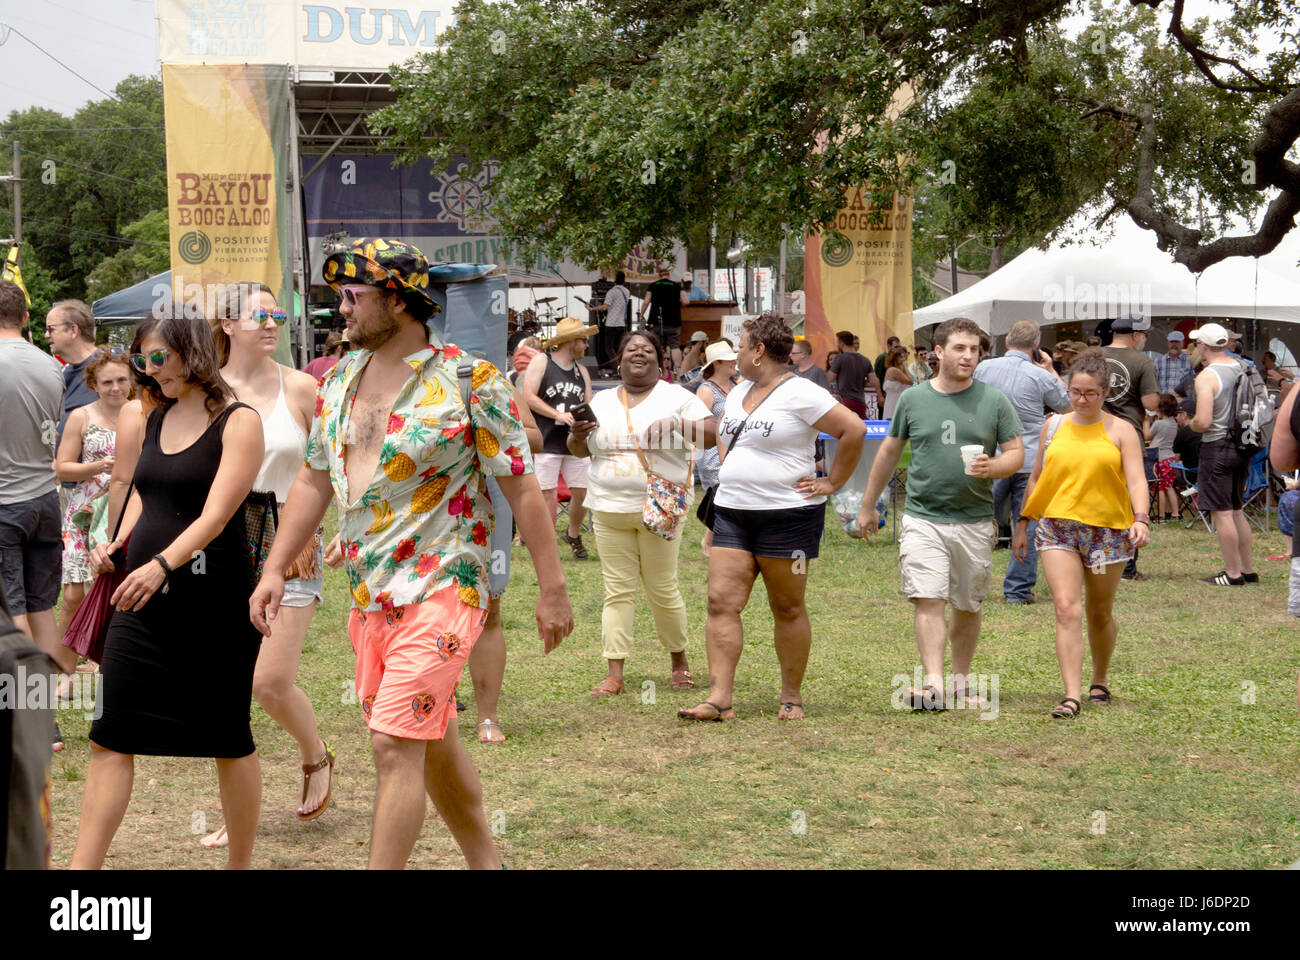 Crowds wandering along bayou St. John at the annual Bayou Boogaloo Festival.  New Orleans, LA. - Stock Image